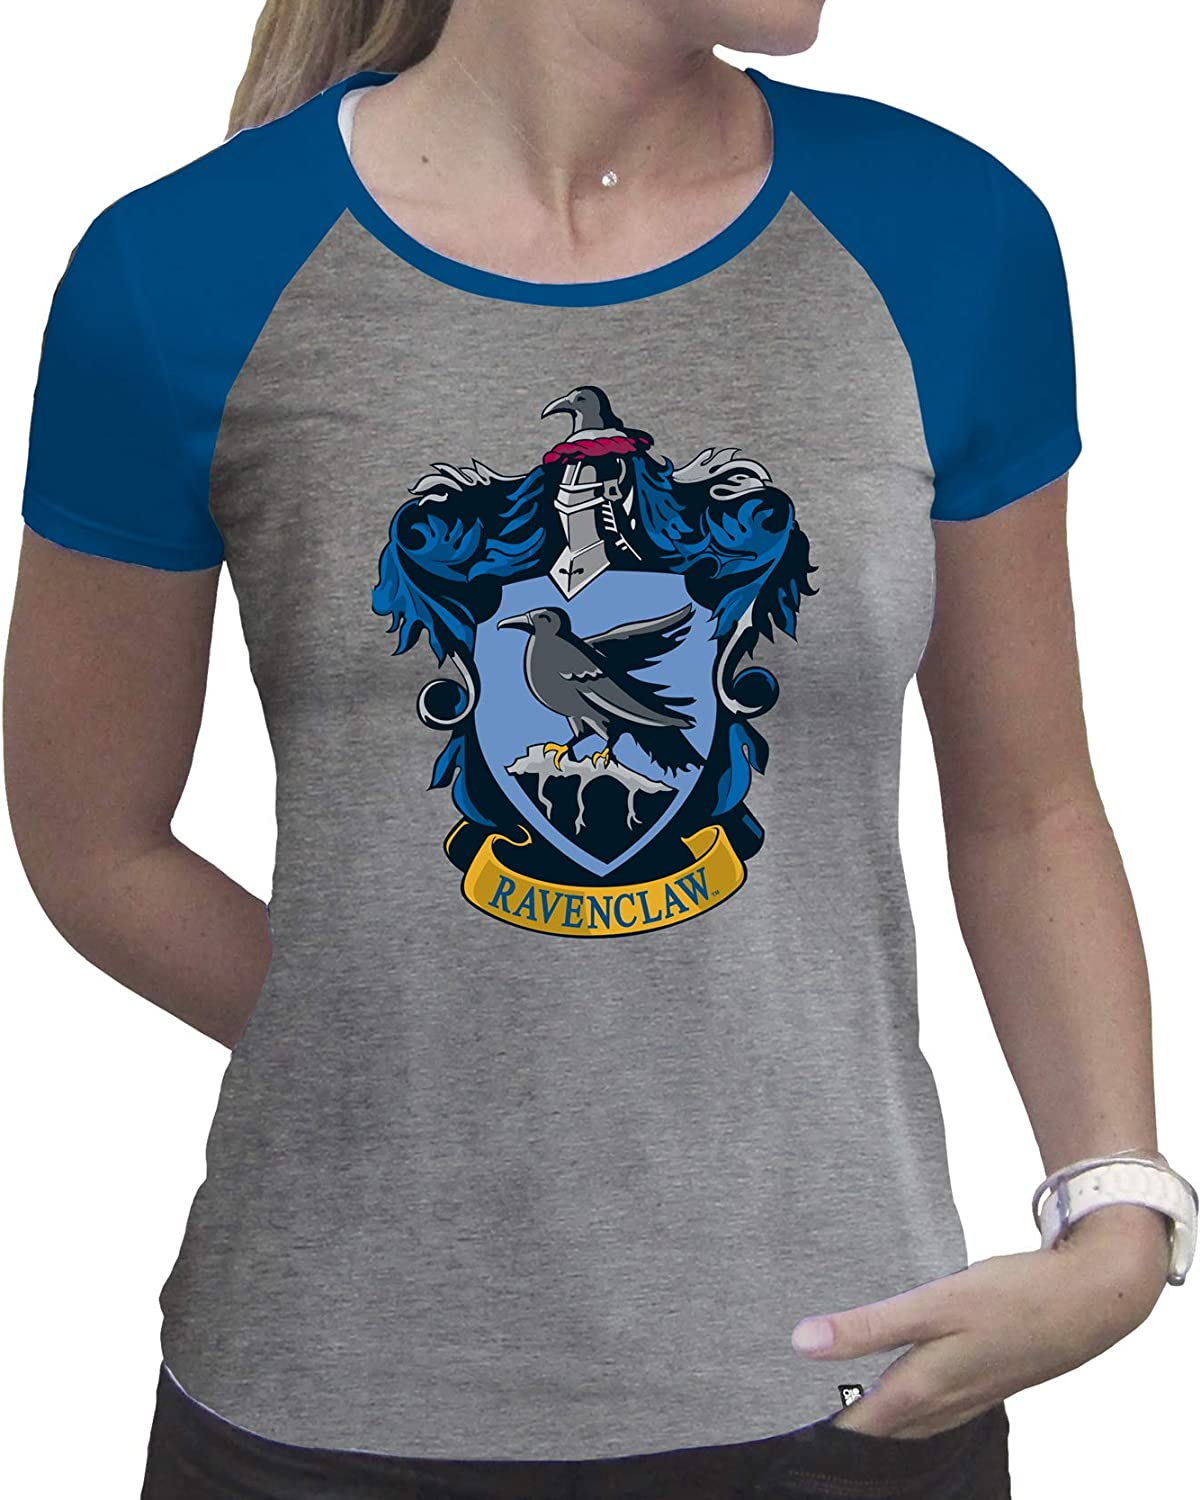 ABYstyle - Harry Potter - Camiseta - Ravenclaw - Mujer - Gris y Azul - Premium